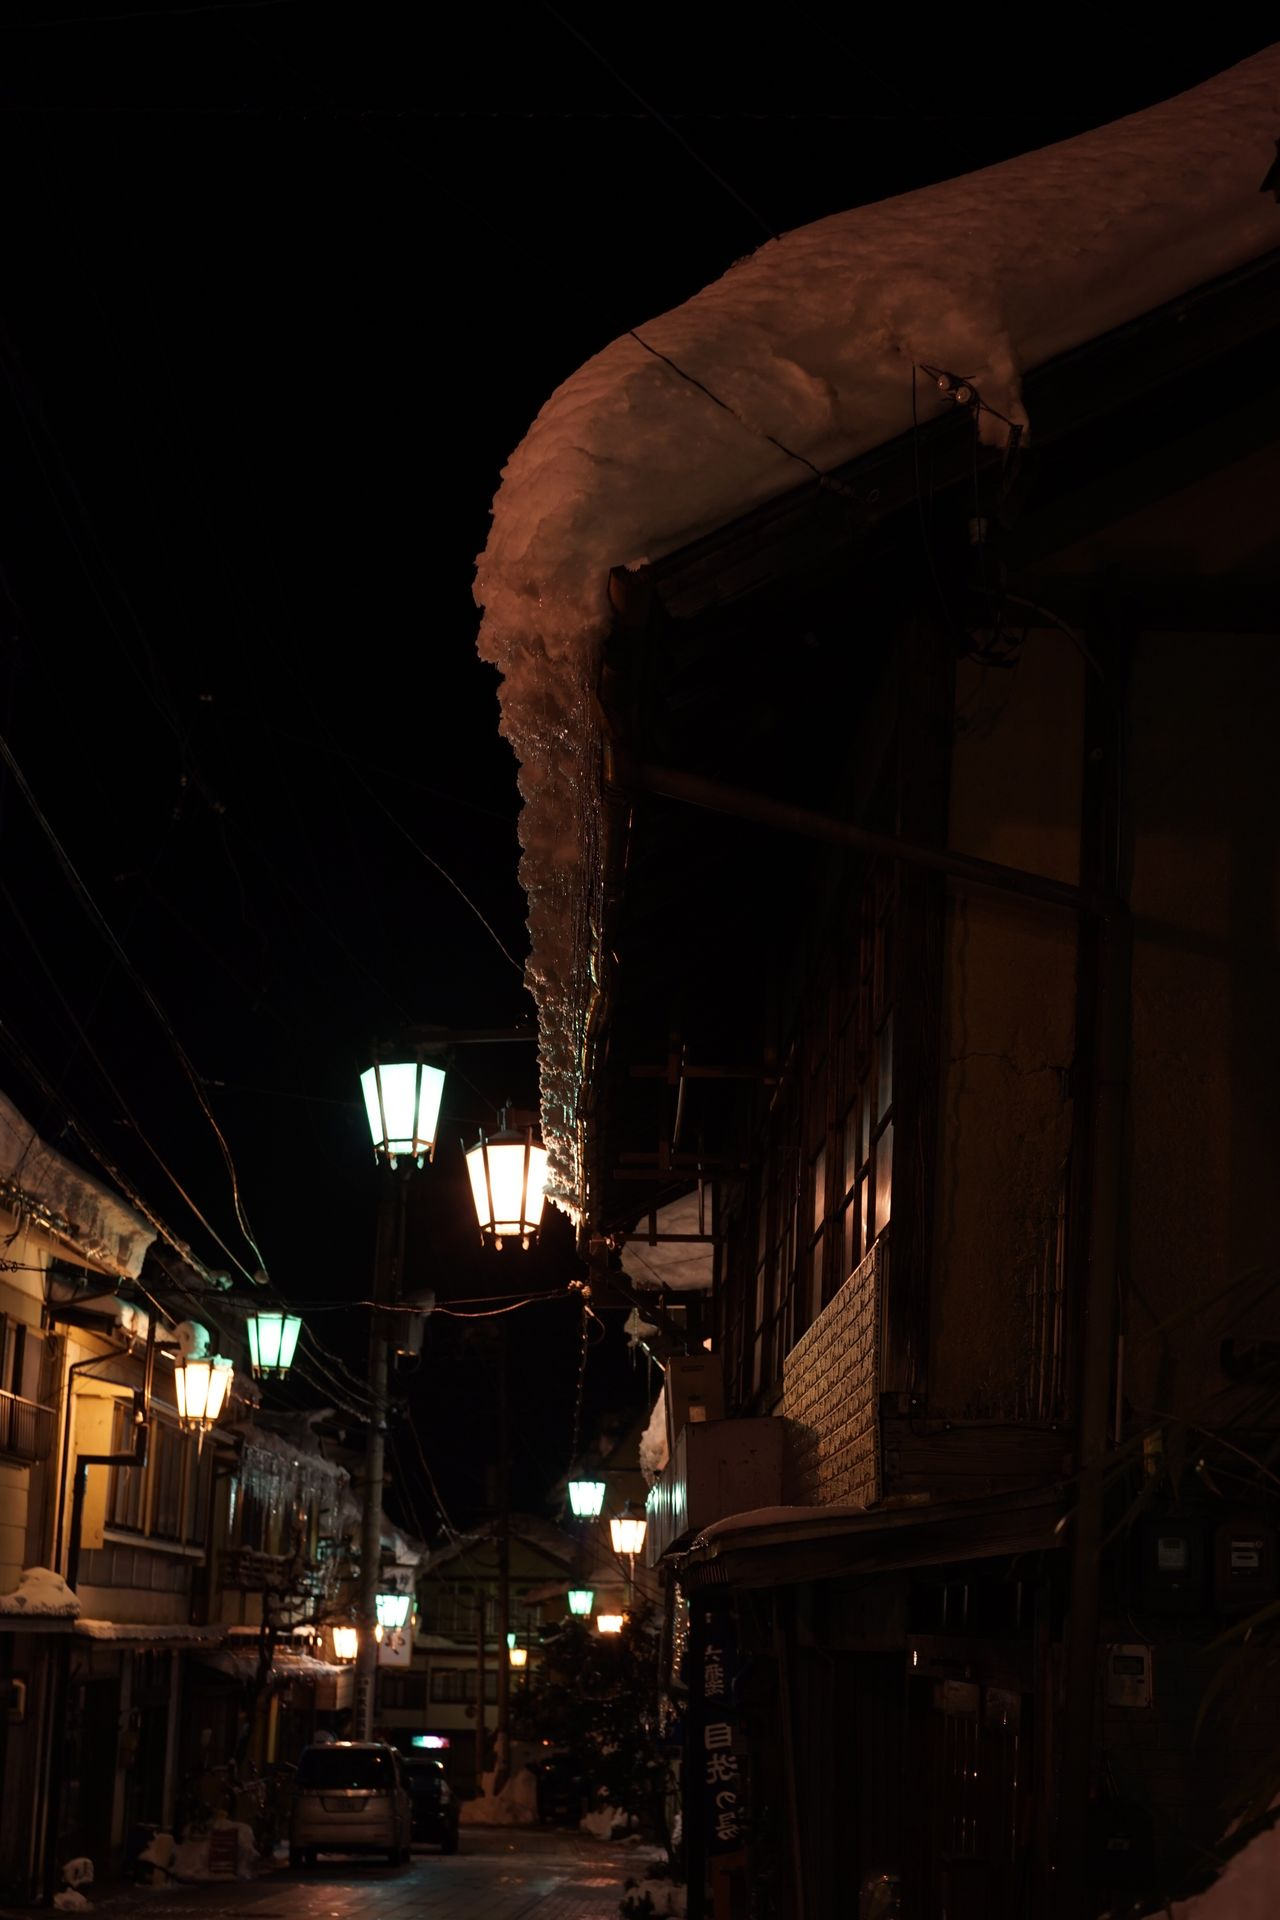 Night Illuminated Low Angle View Building Exterior Built Structure Architecture Outdoors Sky No People Hot Spring Japanese Traditional Full Length Snow Covered 渋温泉 Old House Old Buildings Old Town Japanese Temple Japan Photography Travel Destinations Onsen Iced Japanese Style Night Lights Night View